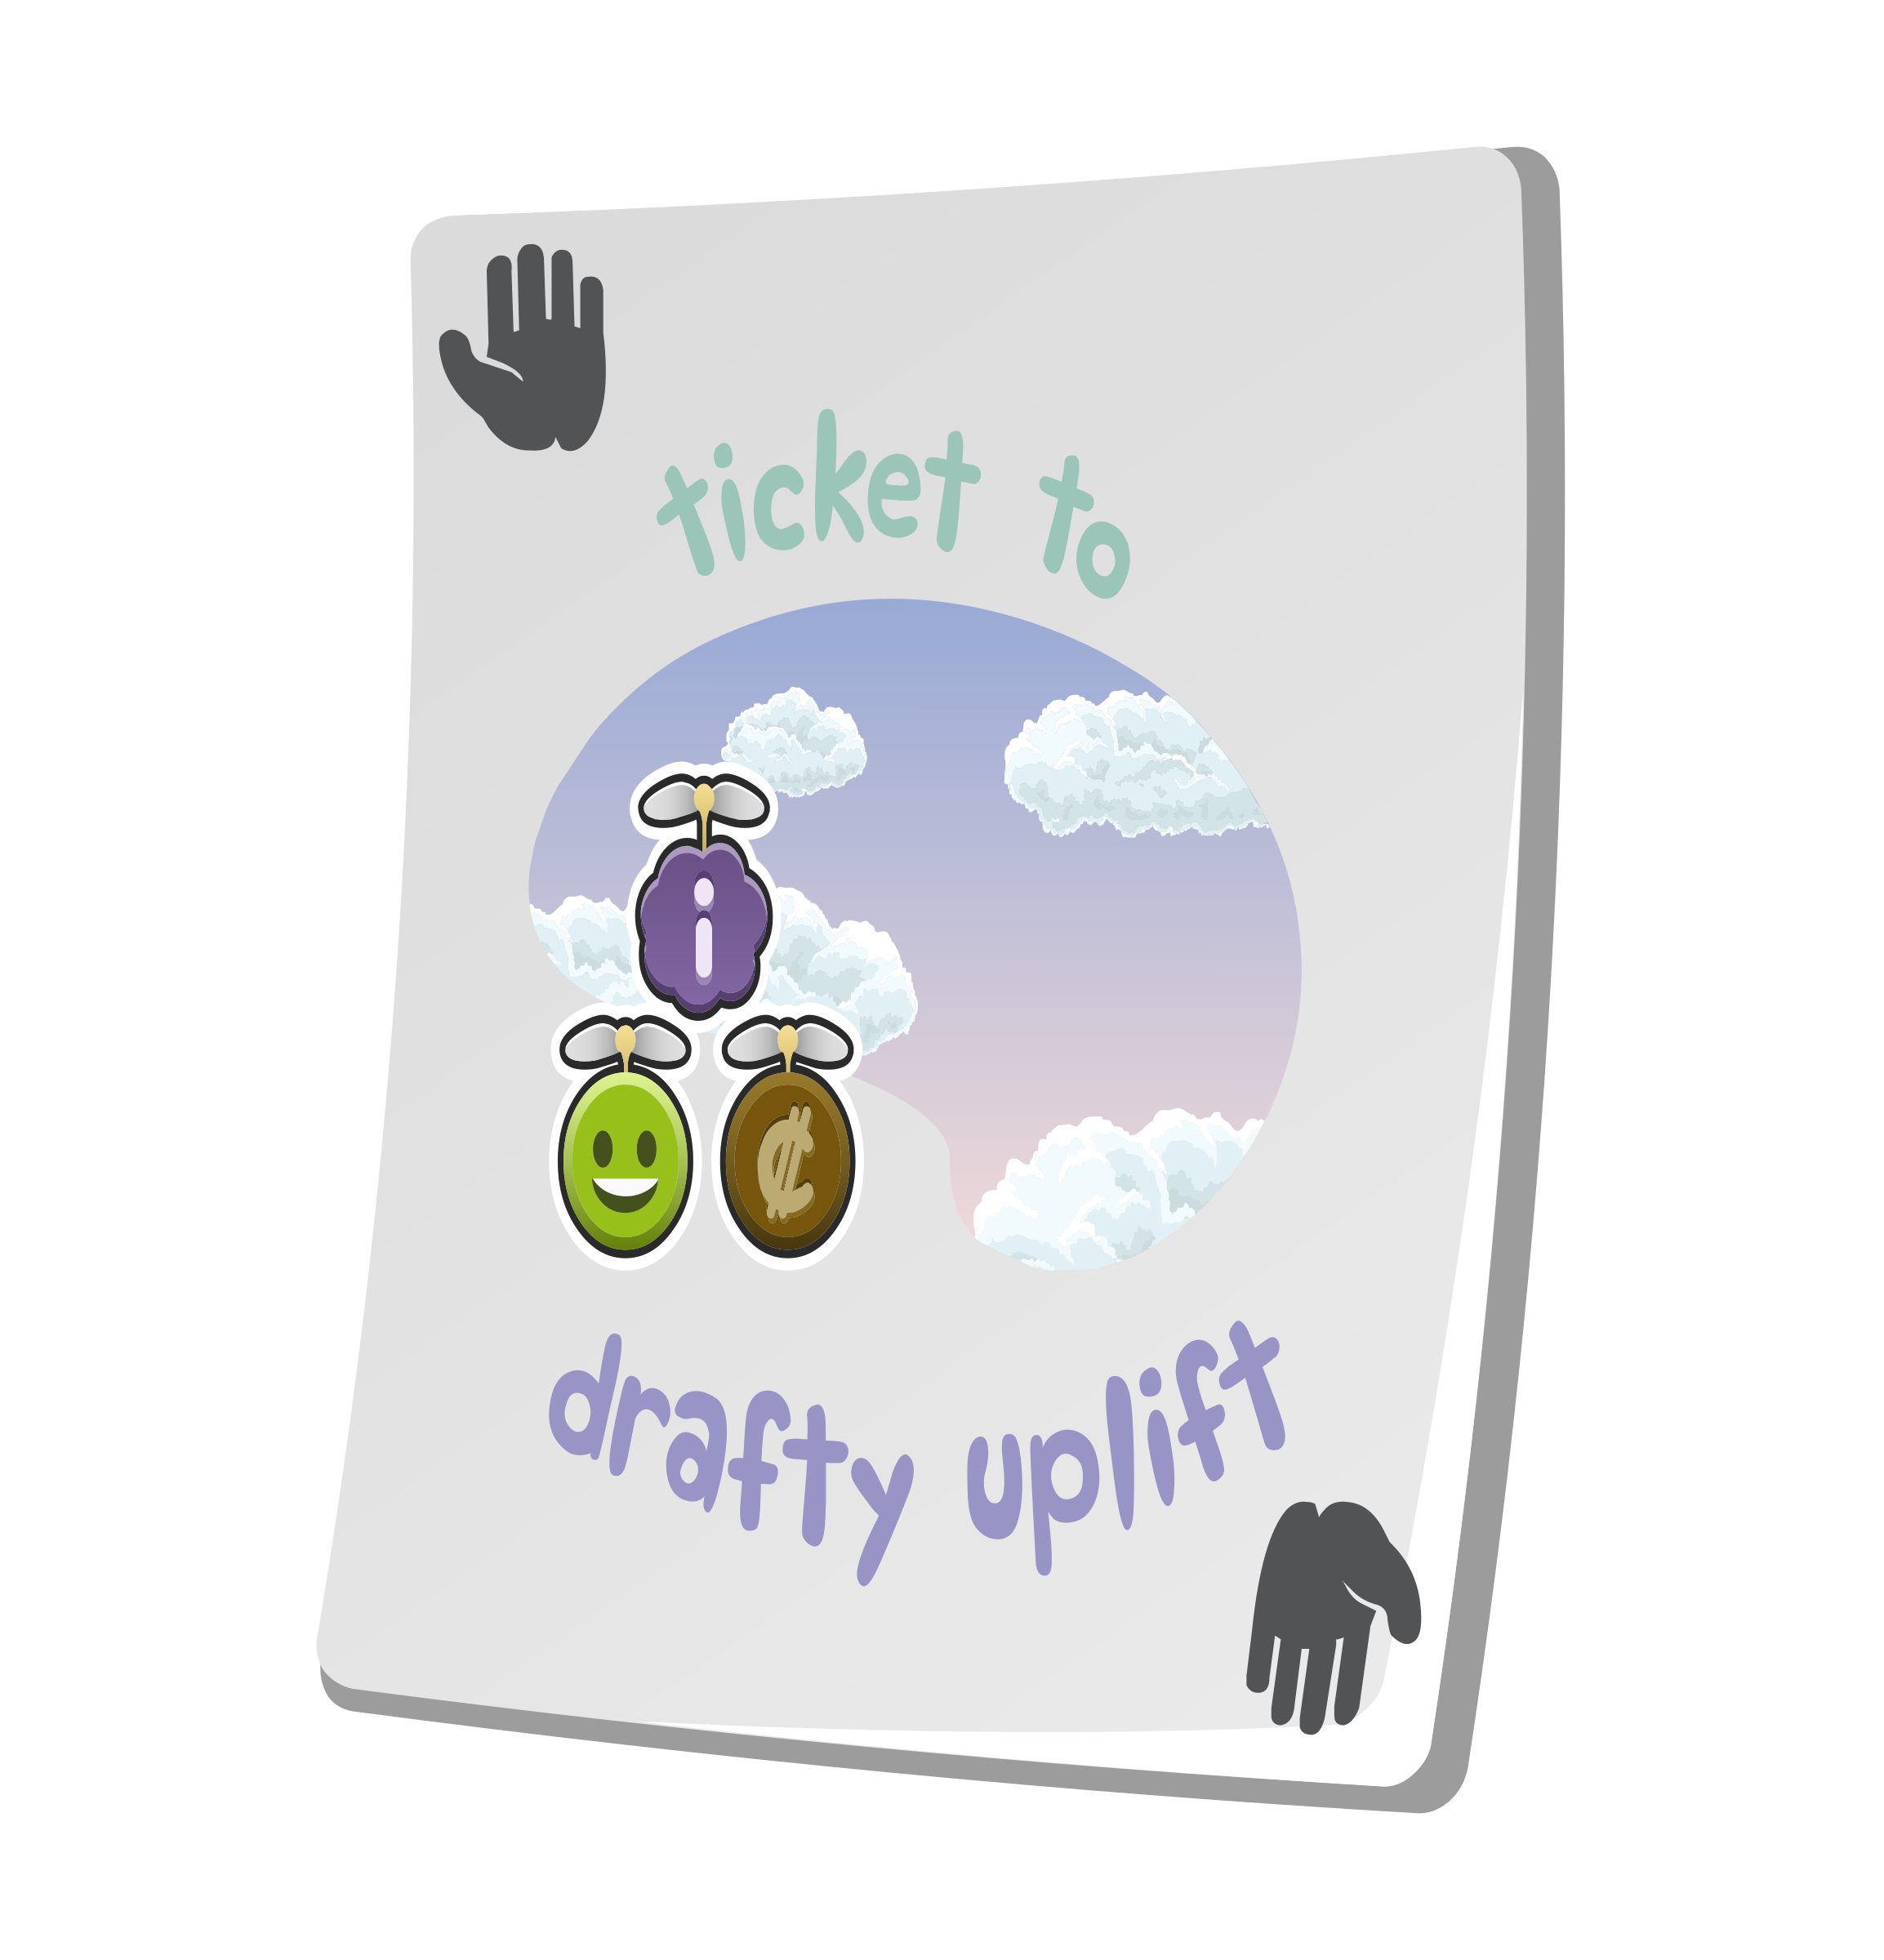 Misc Paradise Ticket Drafty Uplift by glitch